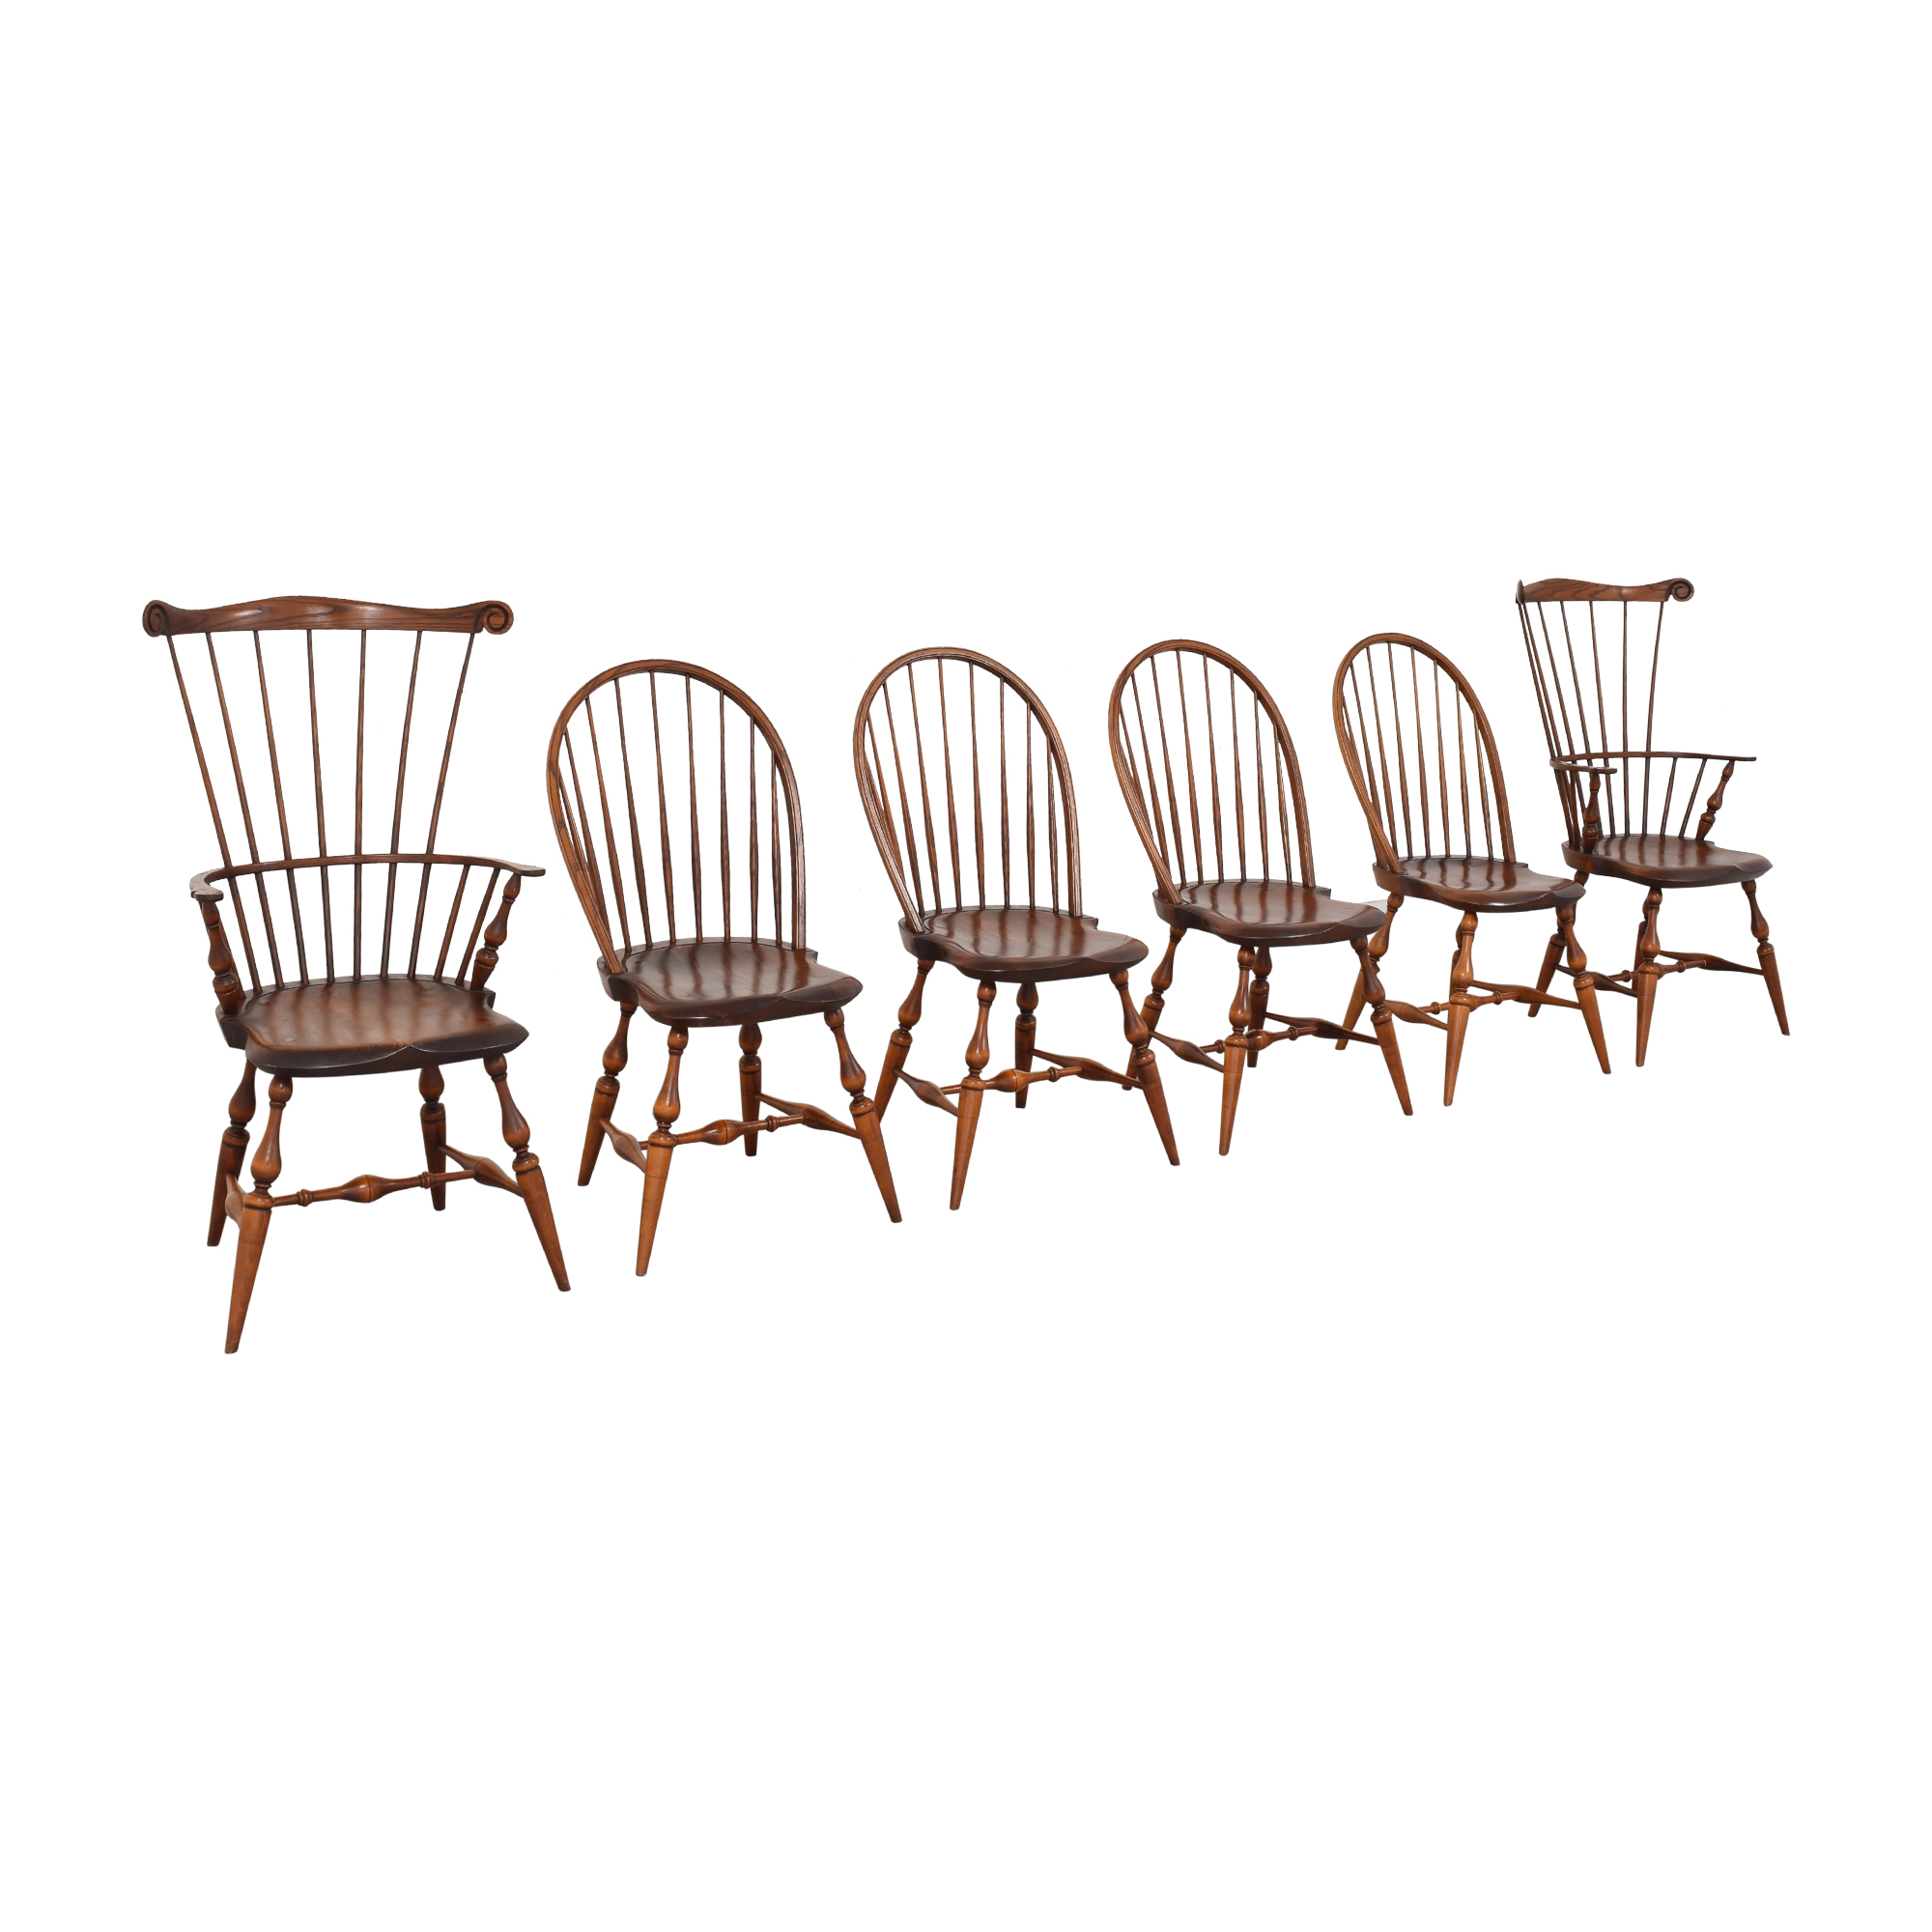 Warren Chair Works New England Dining Chairs sale